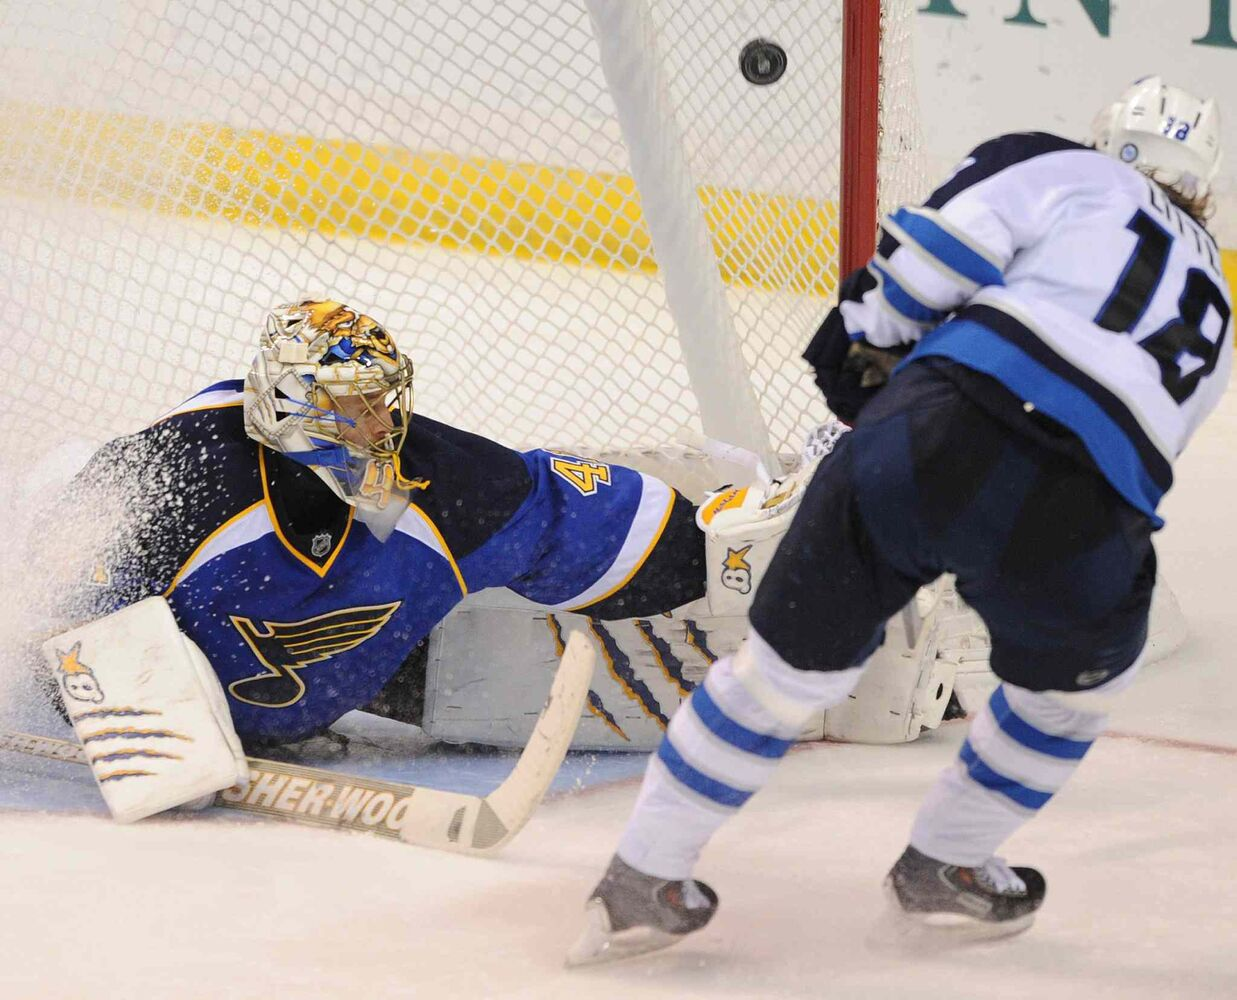 St. Louis Blues goalie Jaroslav Halak can't block a goal by Winnipeg Jets forward Bryan Little during the third period of an NHL game in St. Louis Tuesday. The Blues won 3-2. (Bill Boyce / the associated press)